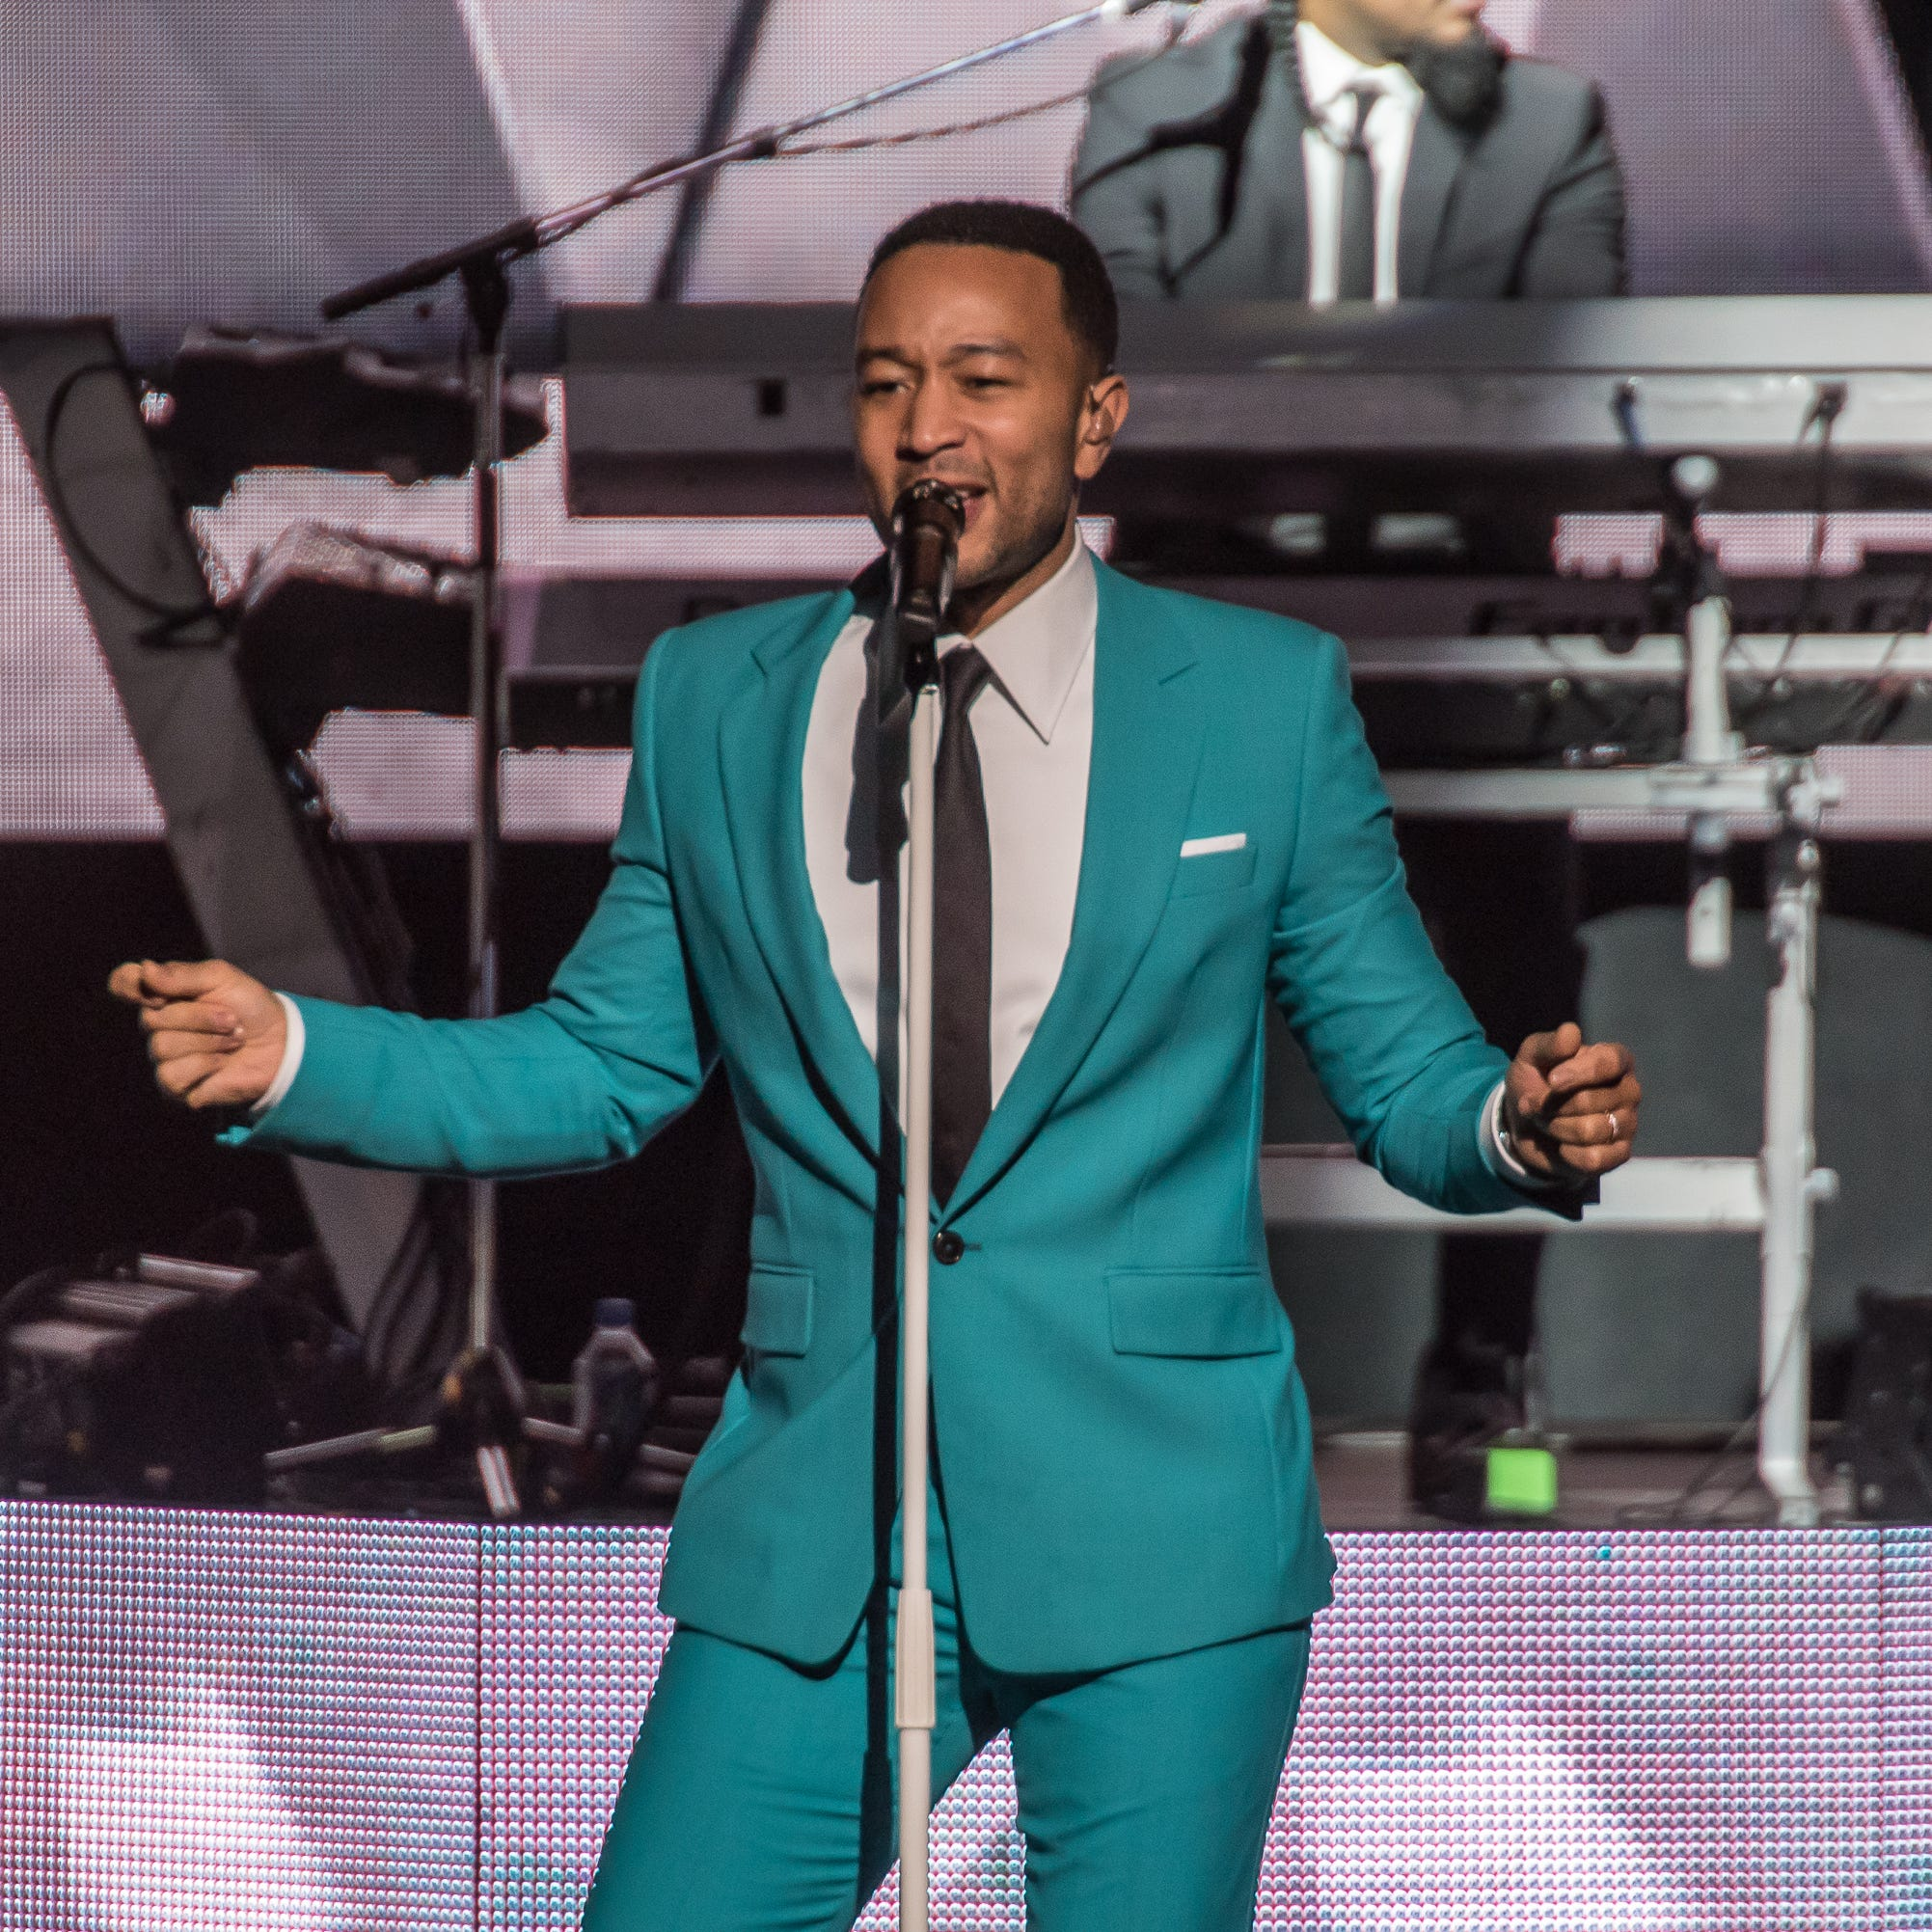 John Legend puts on a merry and bright Christmas concert at Milwaukee's Riverside Theater